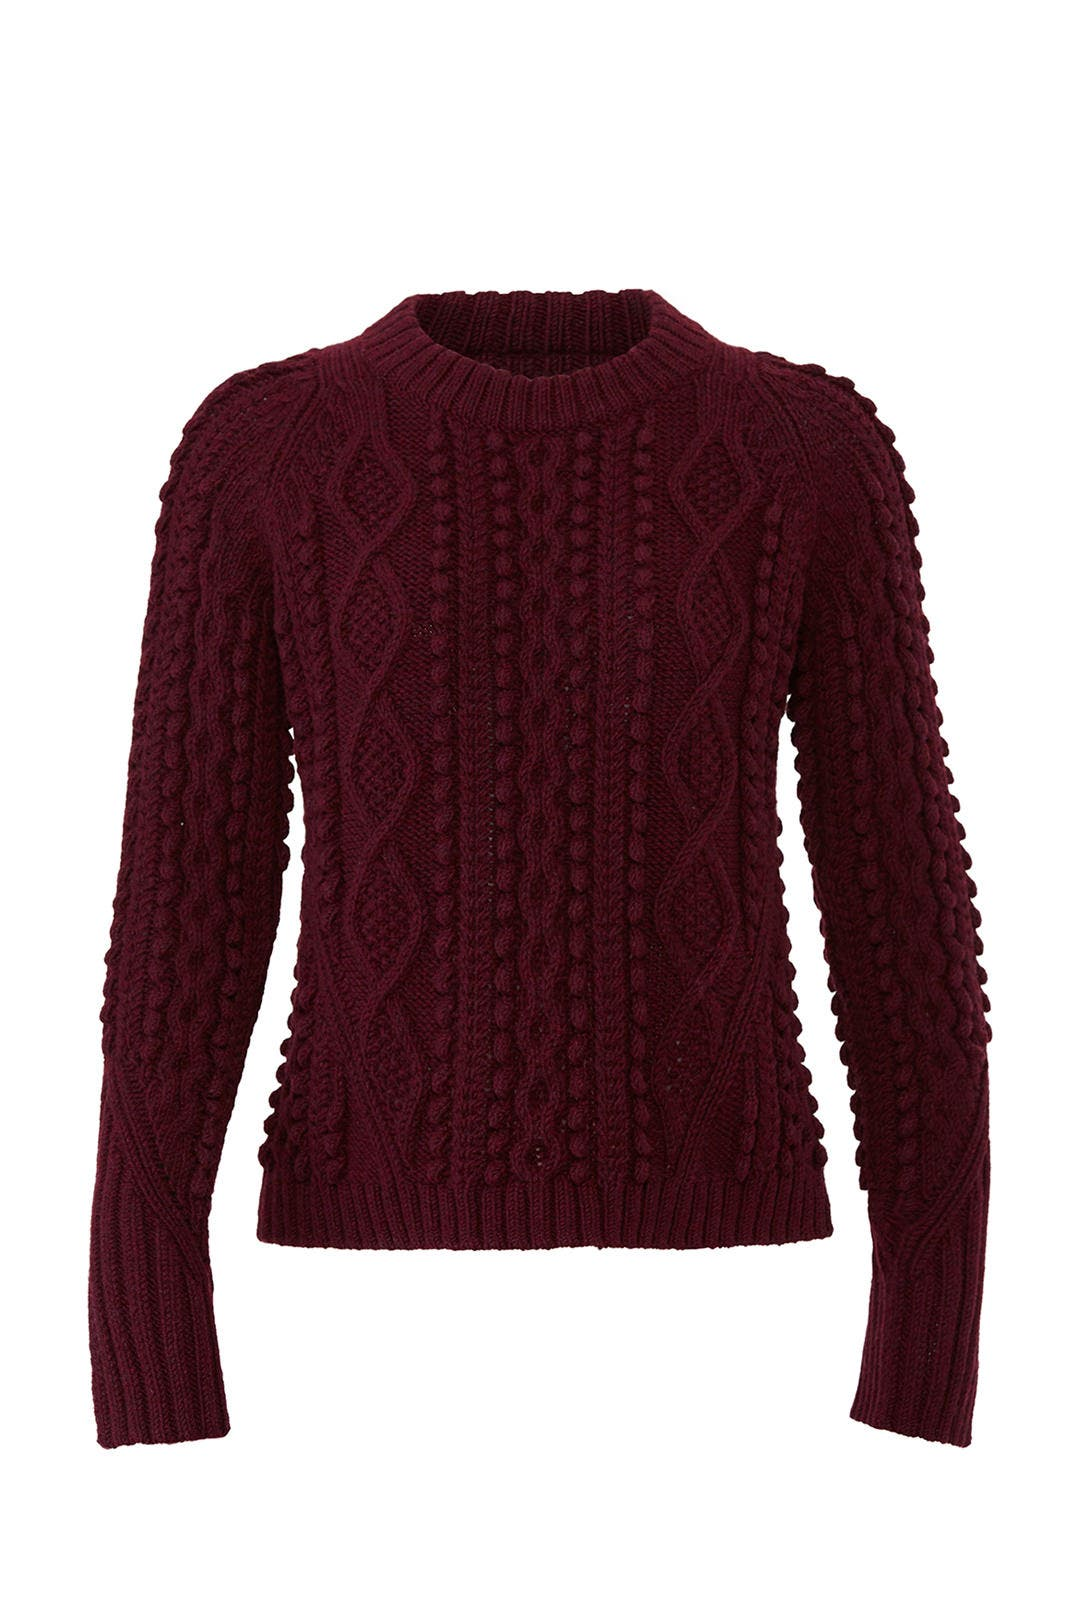 2539d6614b65e1 Popcorn Cable Wool Pullover by 3.1 Phillip Lim for $85 | Rent the Runway